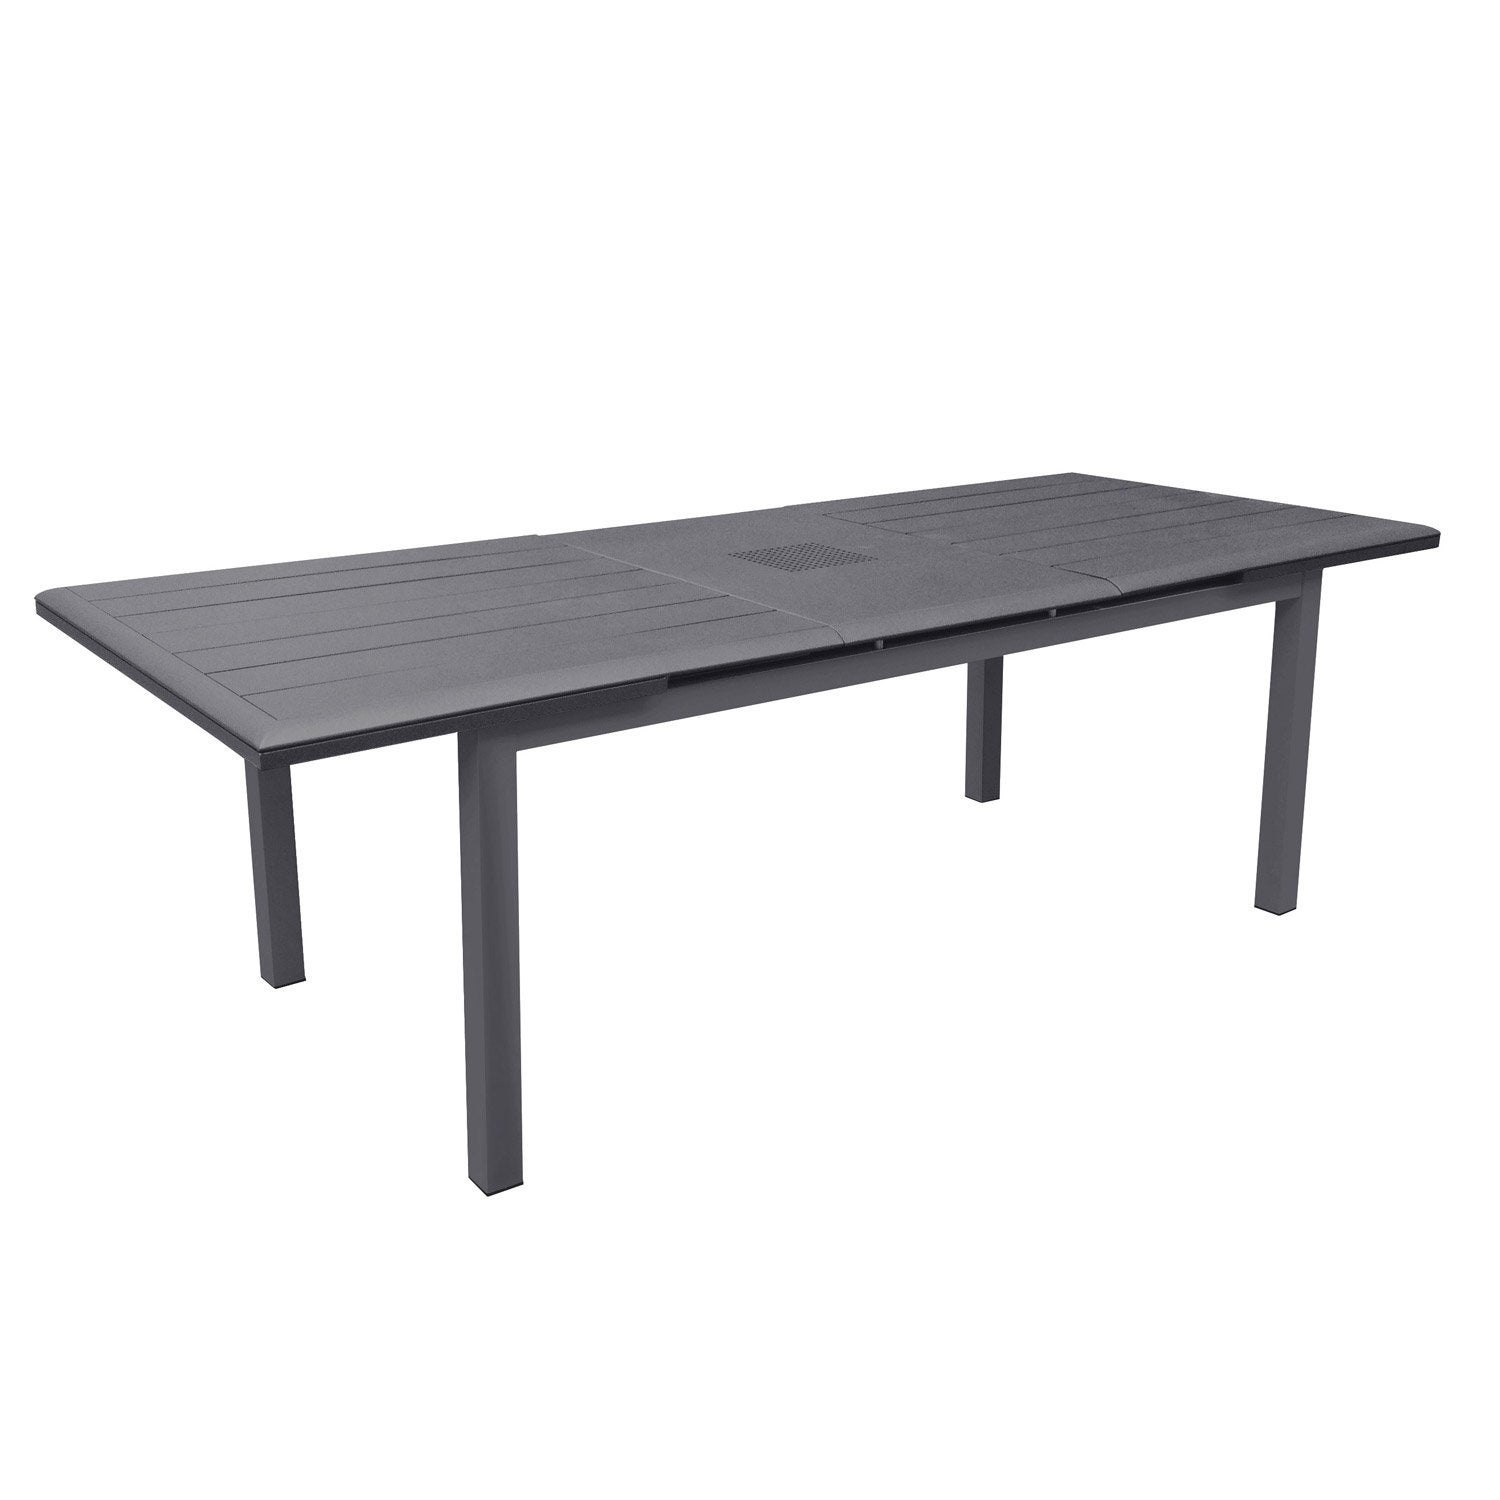 Table de jardin louisiane rectangulaire gris 6 8 personnes for Table de nuit leroy merlin